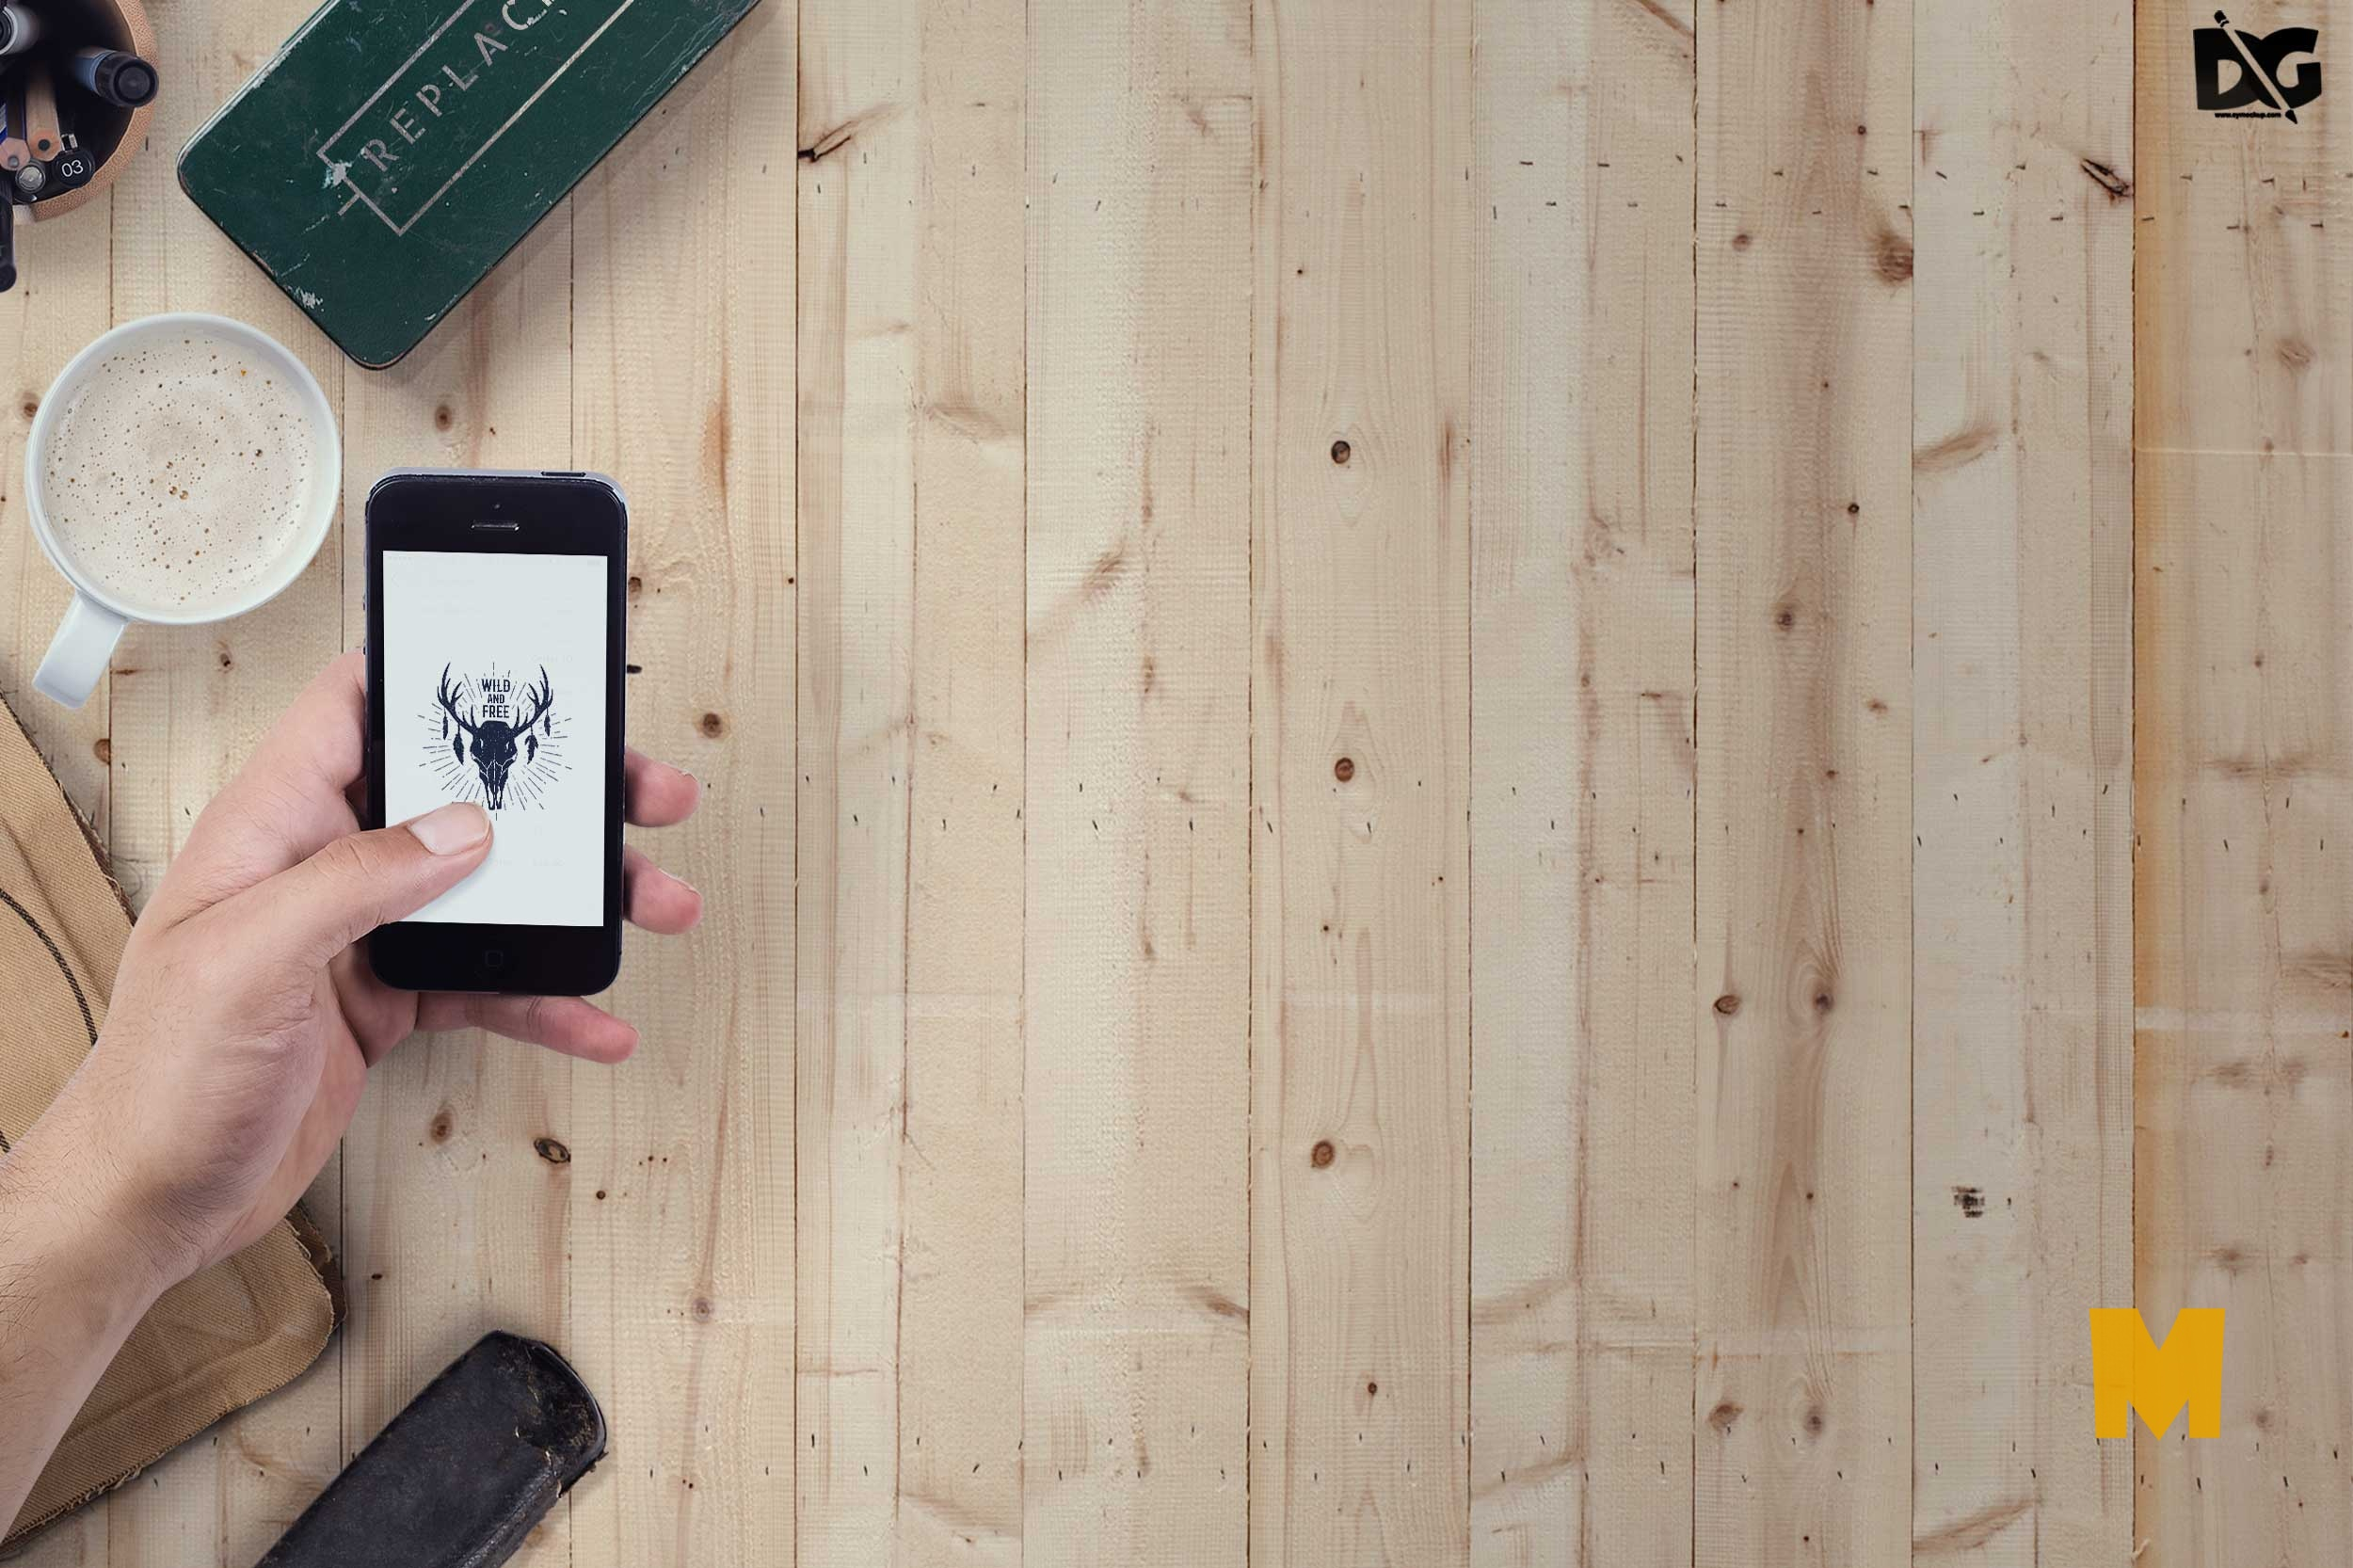 Free PSD iPhone on Wooden Table Mockup